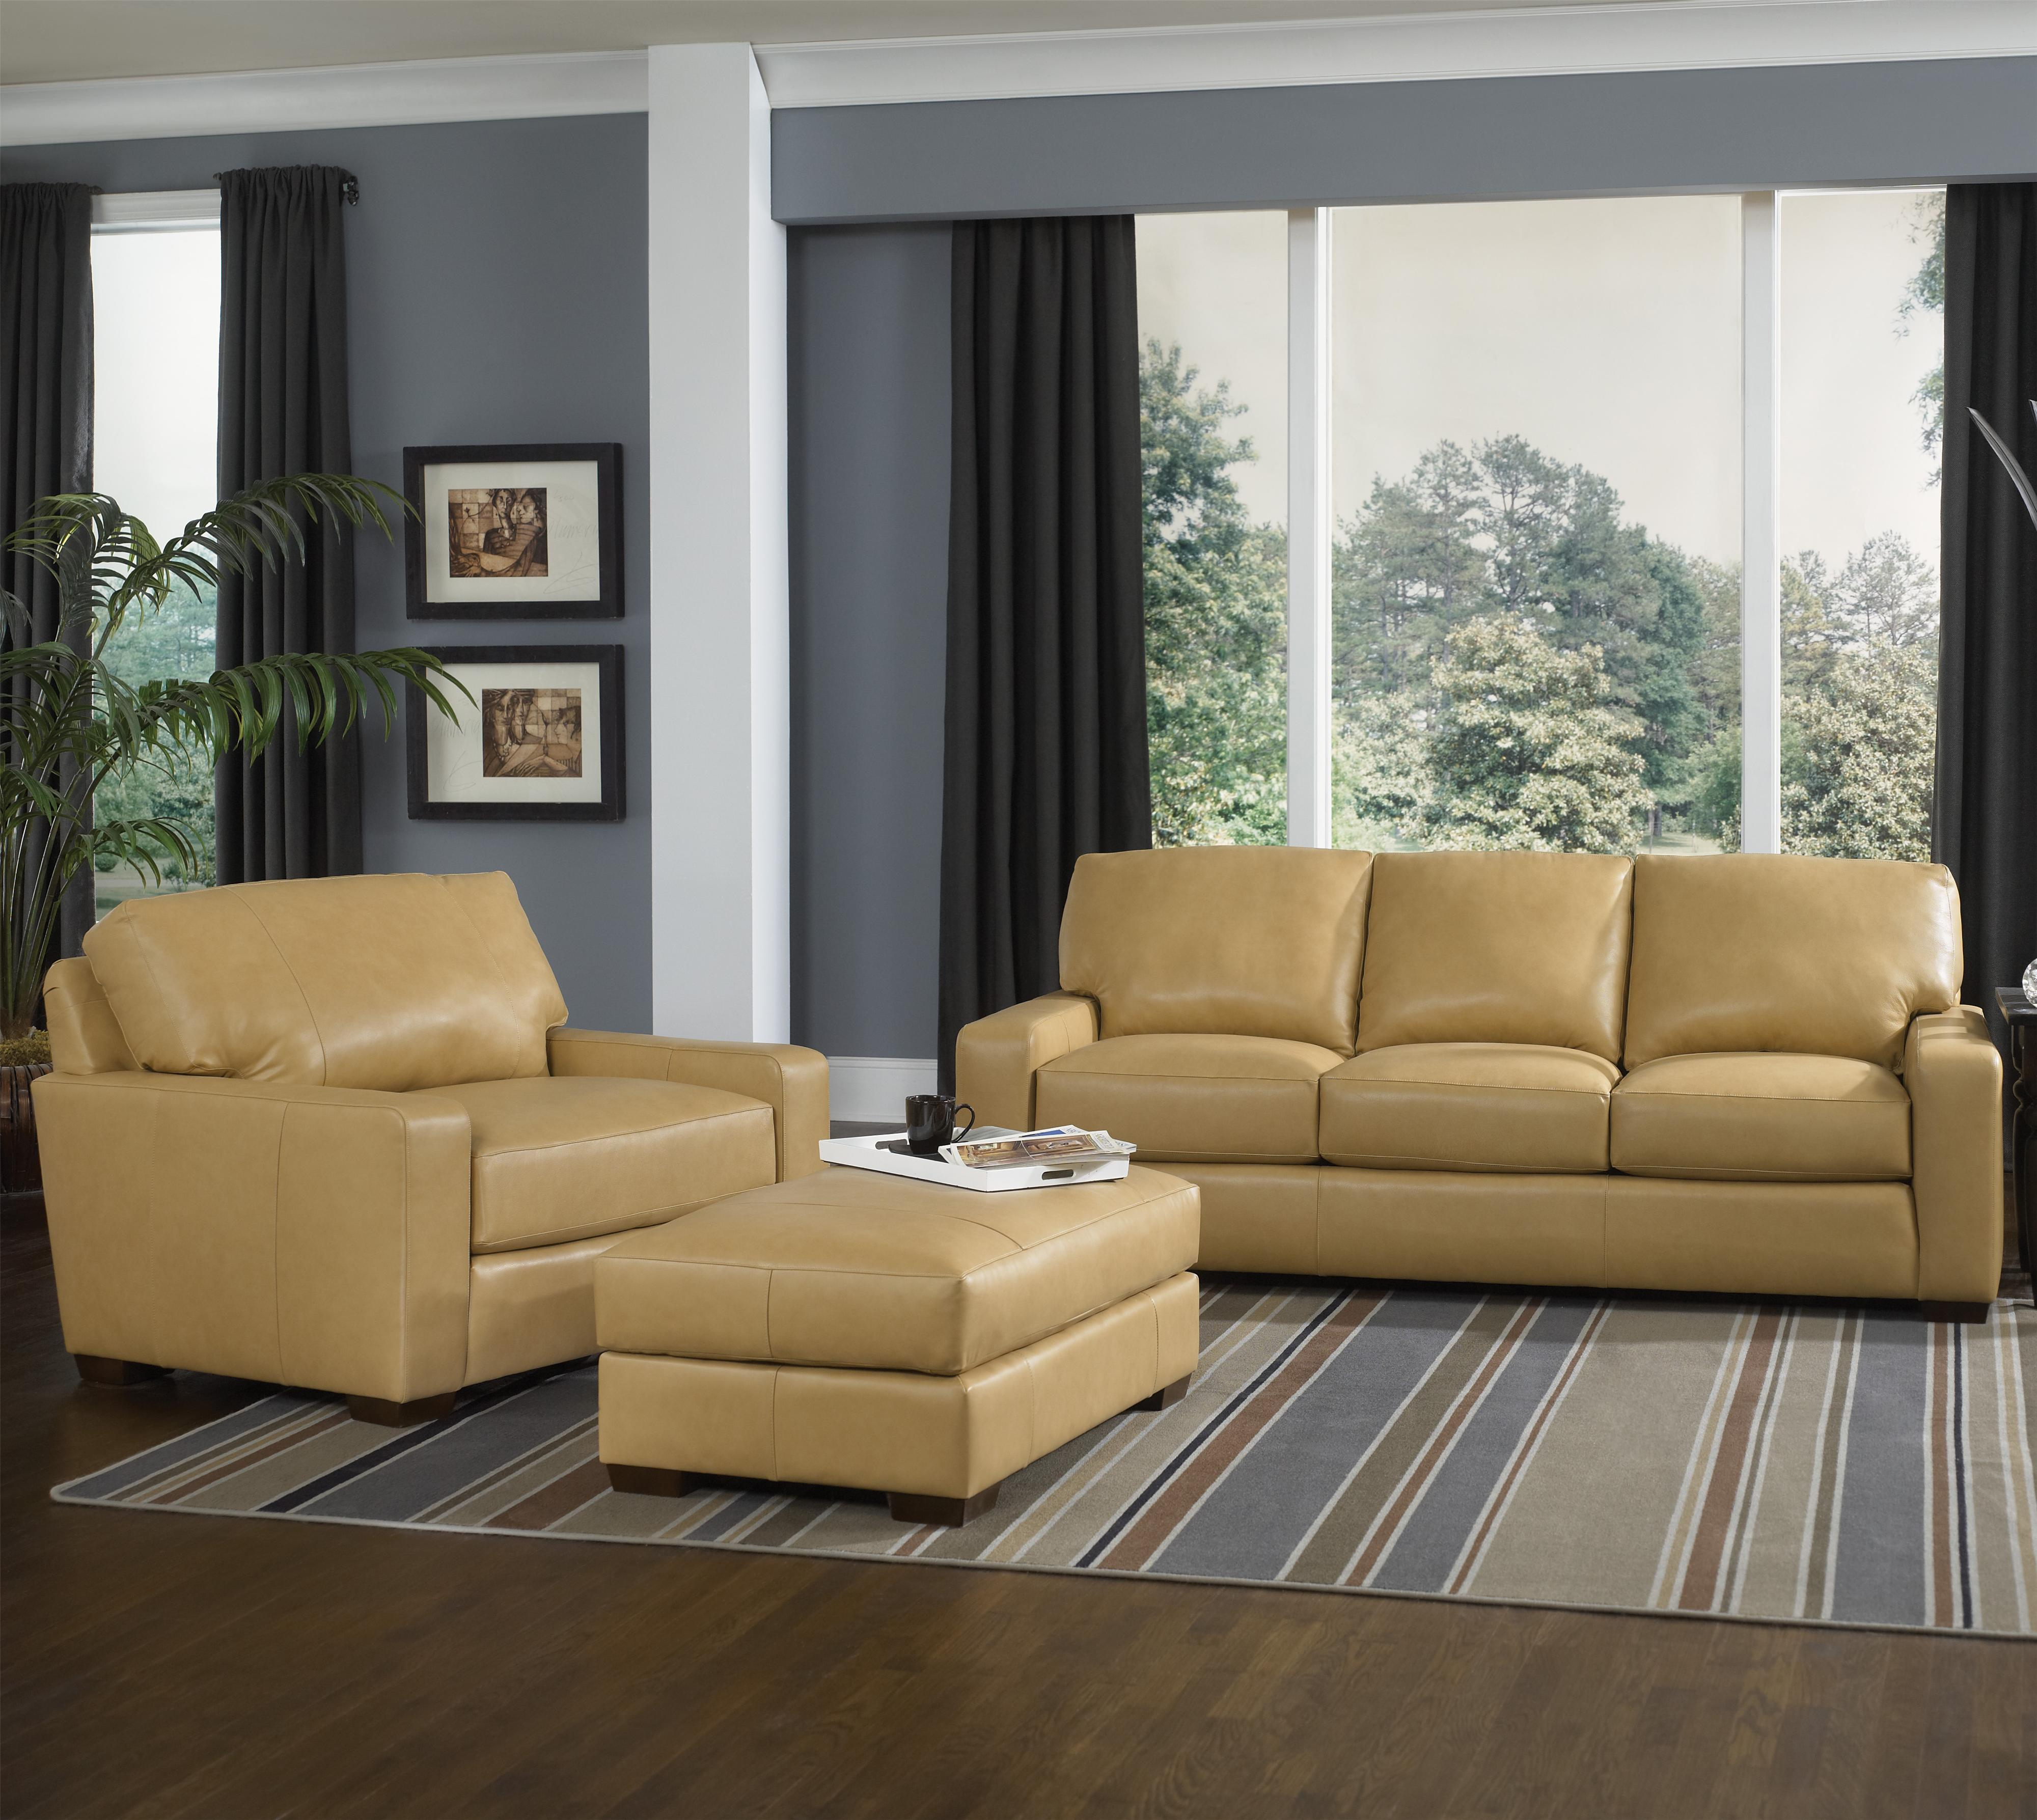 Smith Brothers Build Your Own 8000 Series Corner Sectional